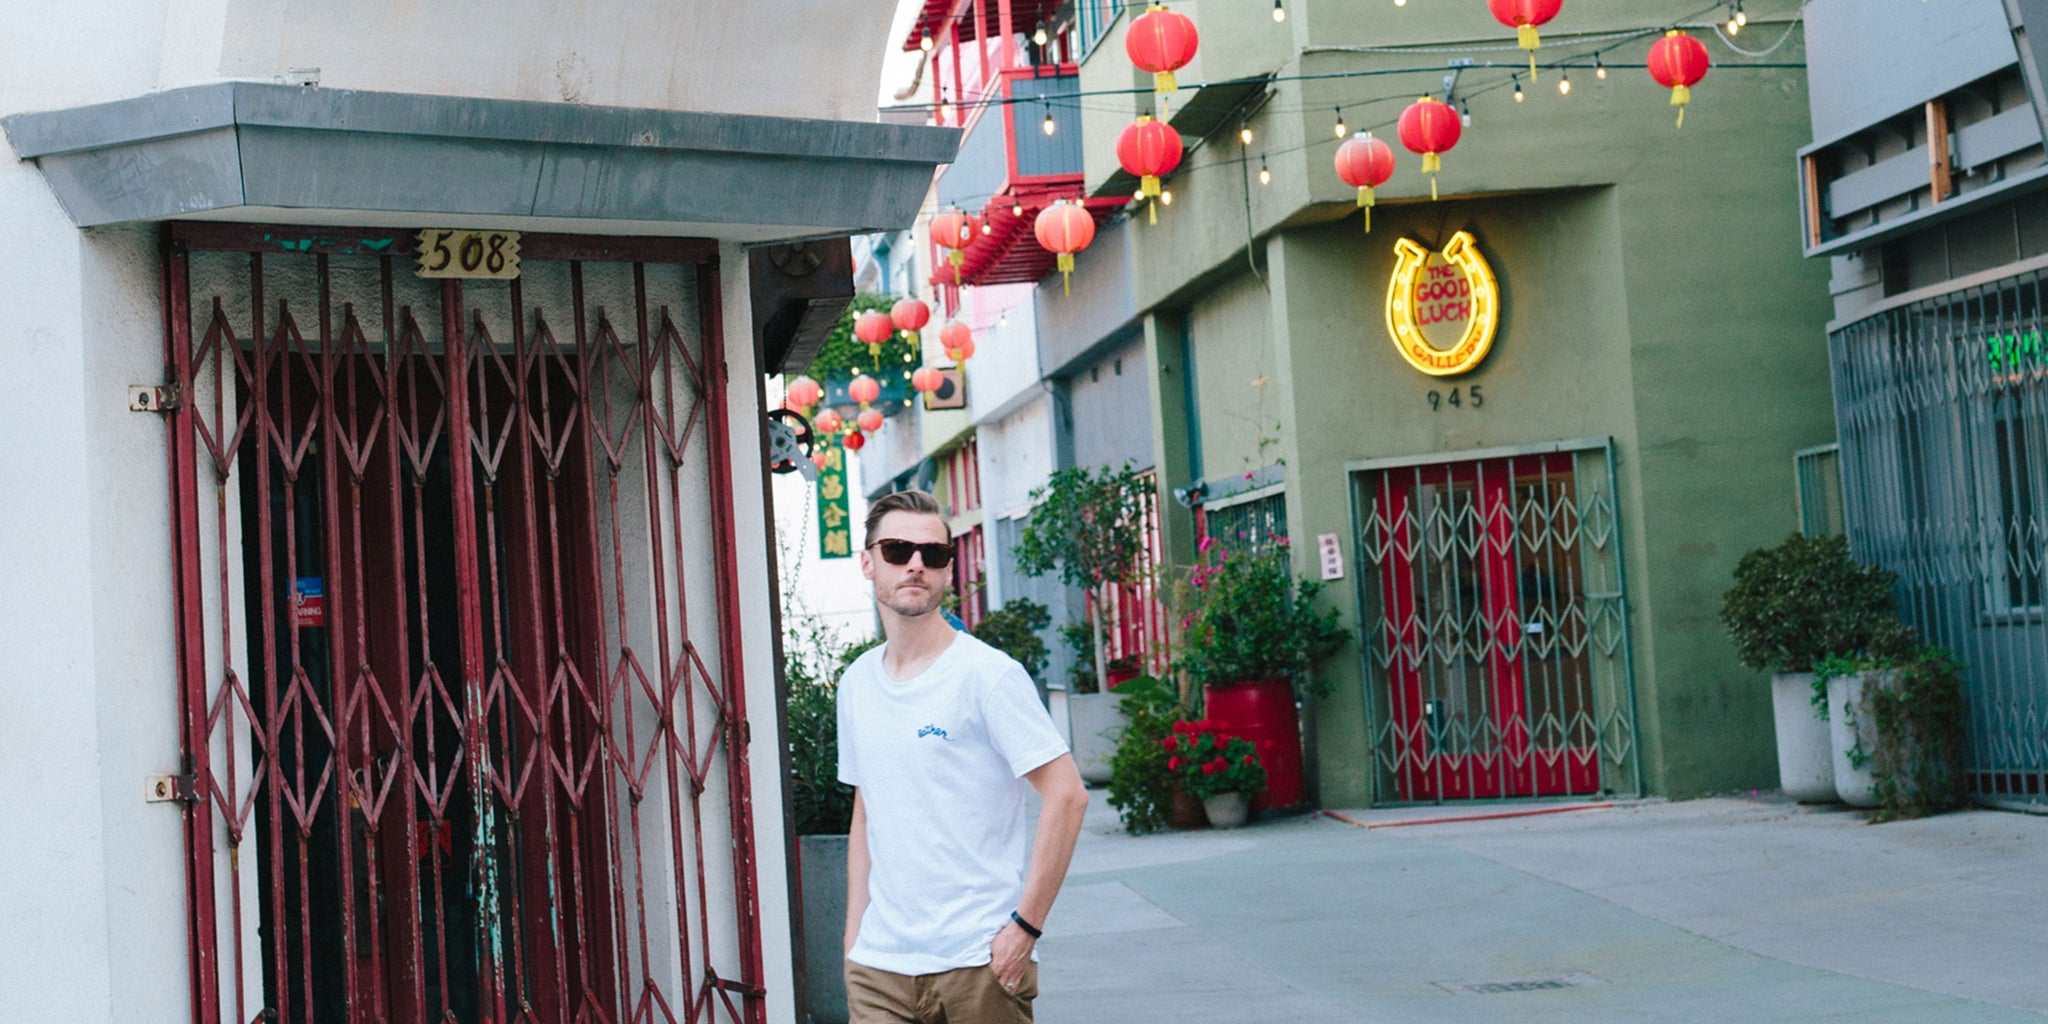 Exploring LA's Chinatown with Sean Martin